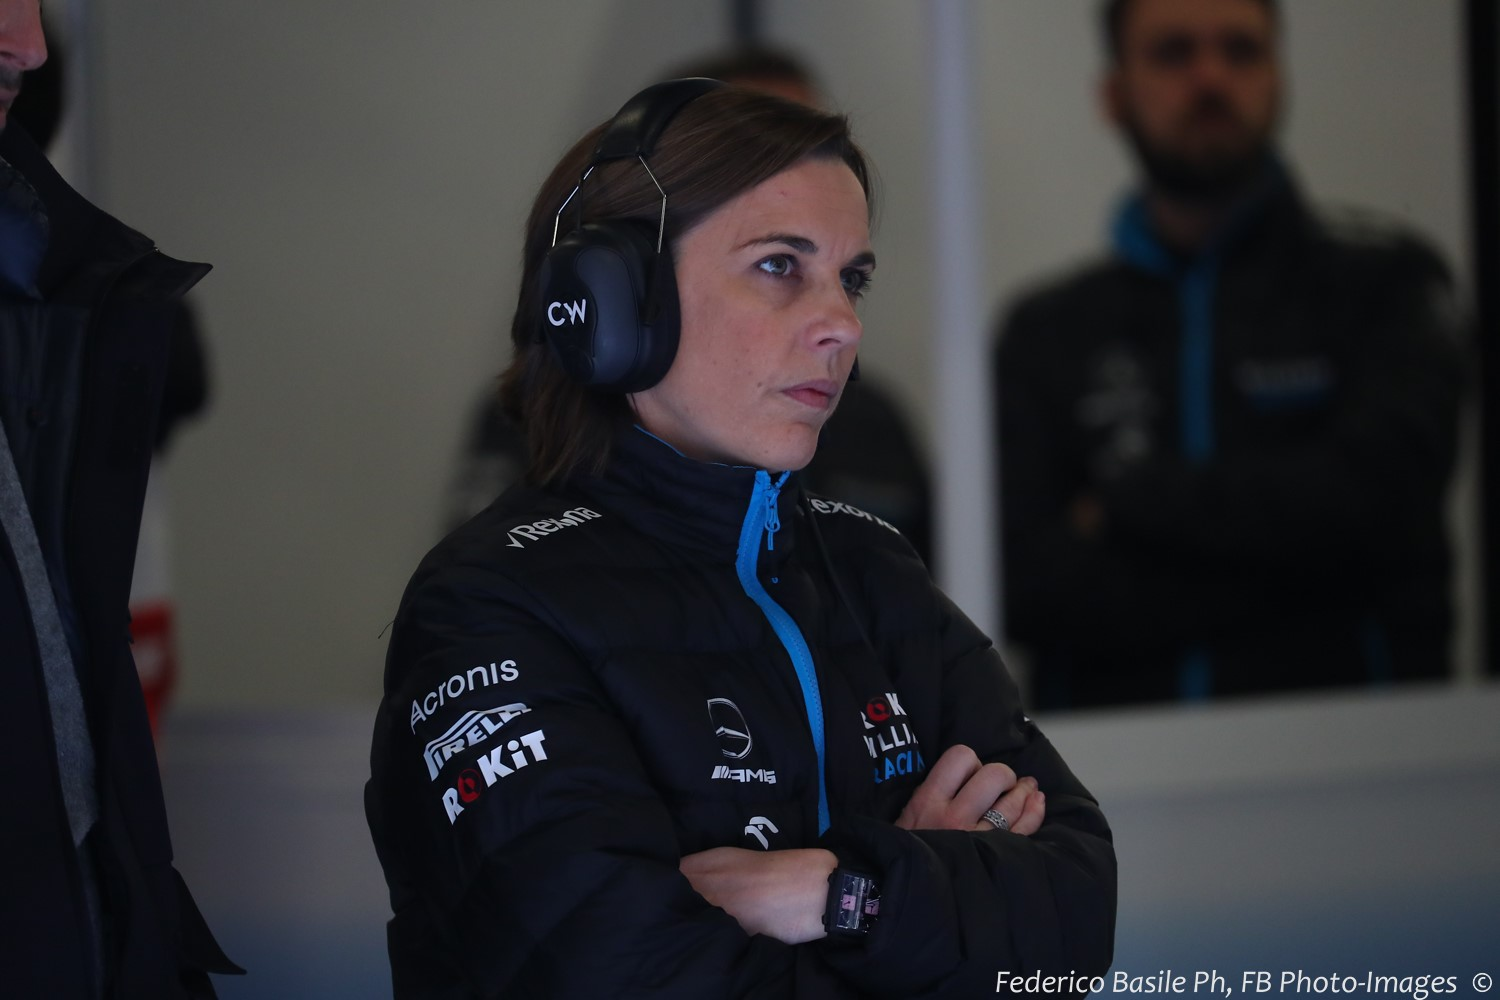 Claire Williams' team also used Mercedes engines. Clearly Mercedes ordered them not to appeal